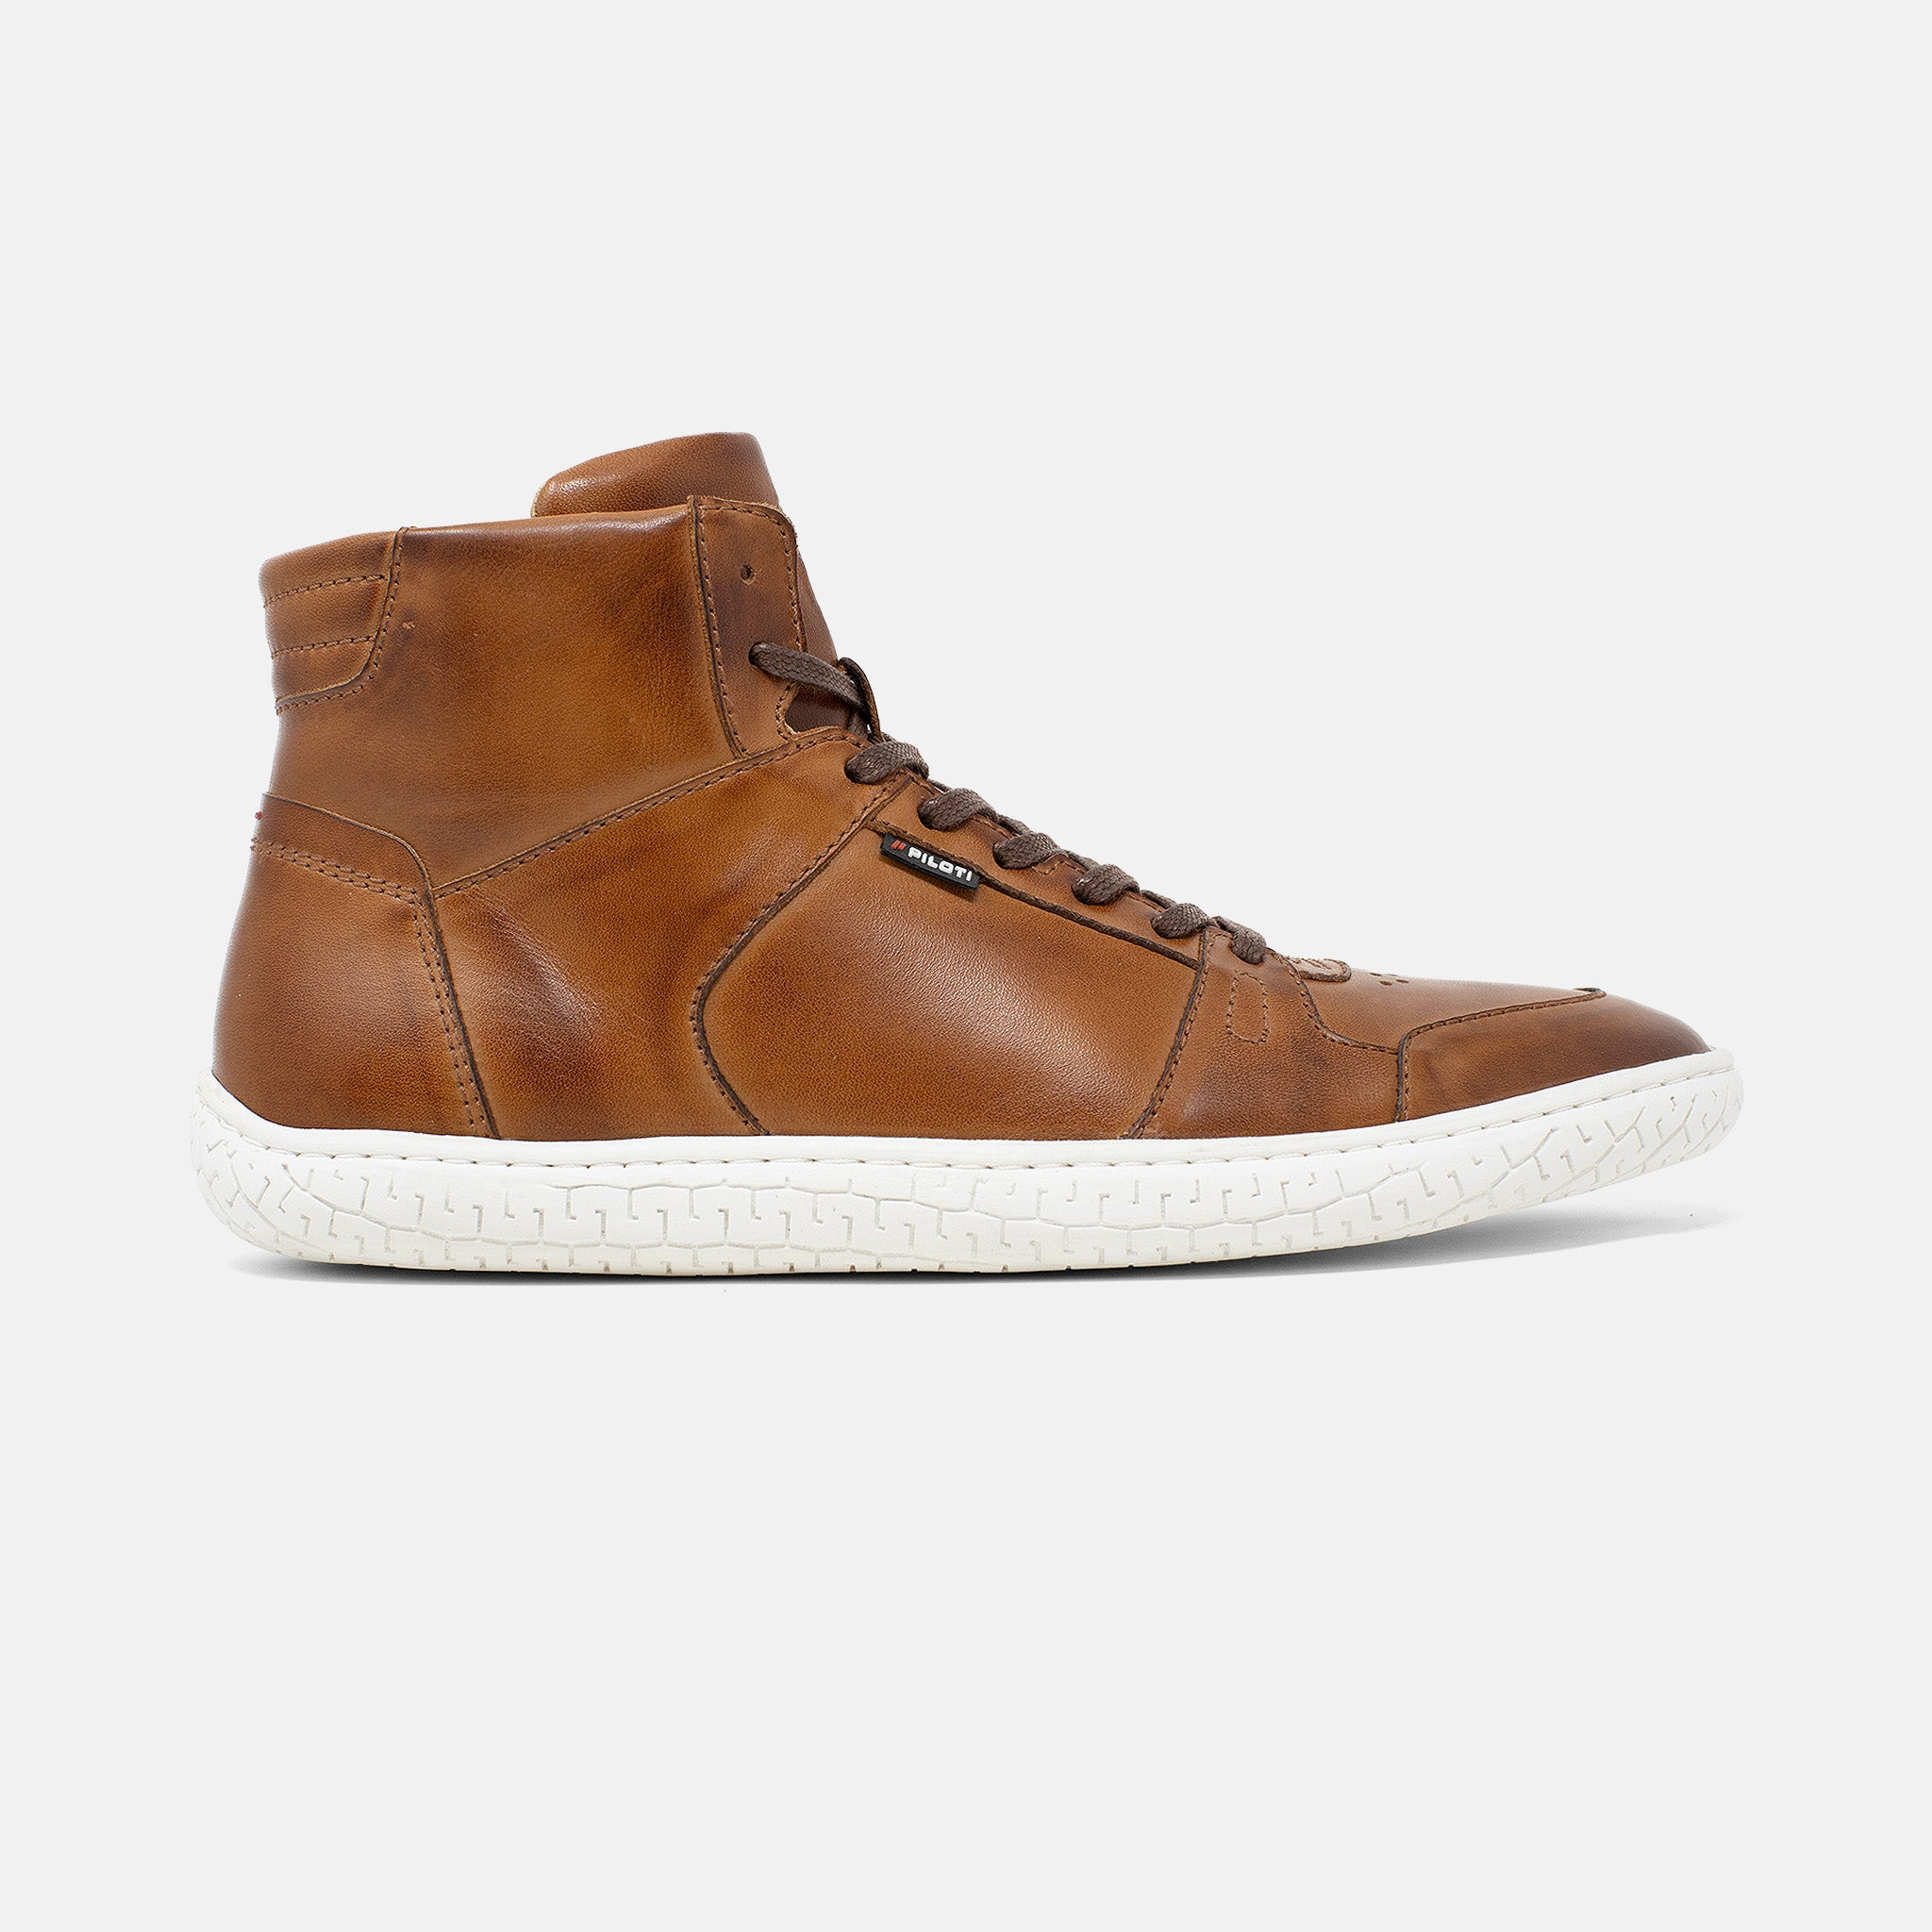 Men's cognac brown burnished leather Apex high top sneaker with white cupsole, lateral view